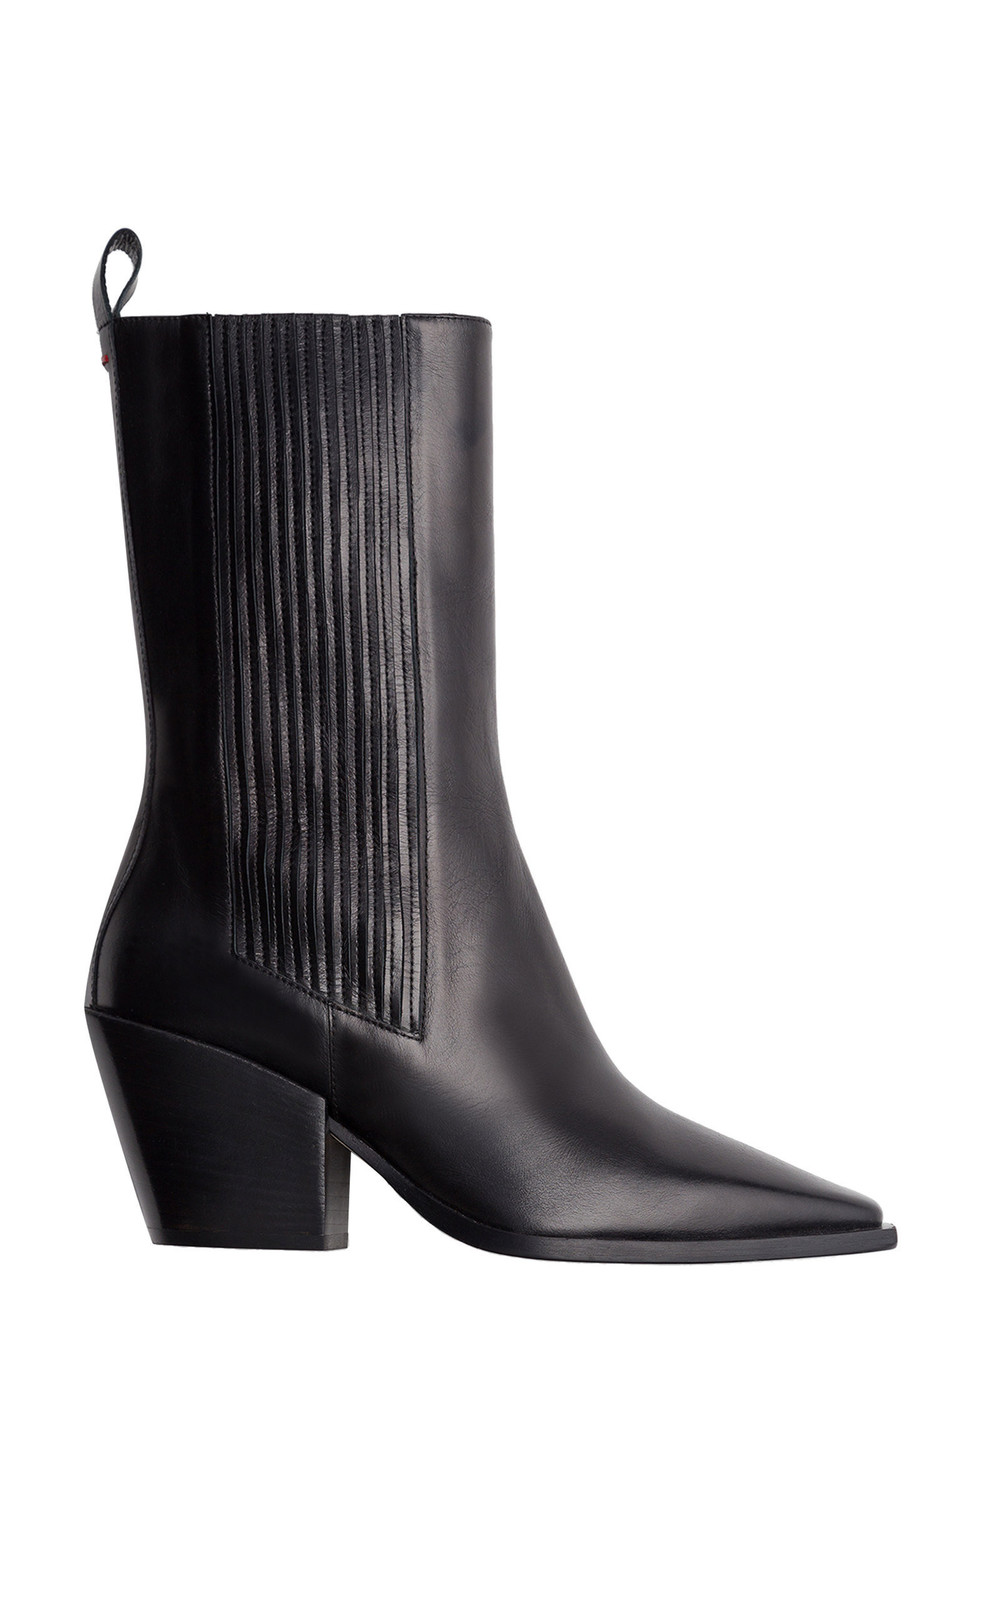 Aeyde Ari Boots in black